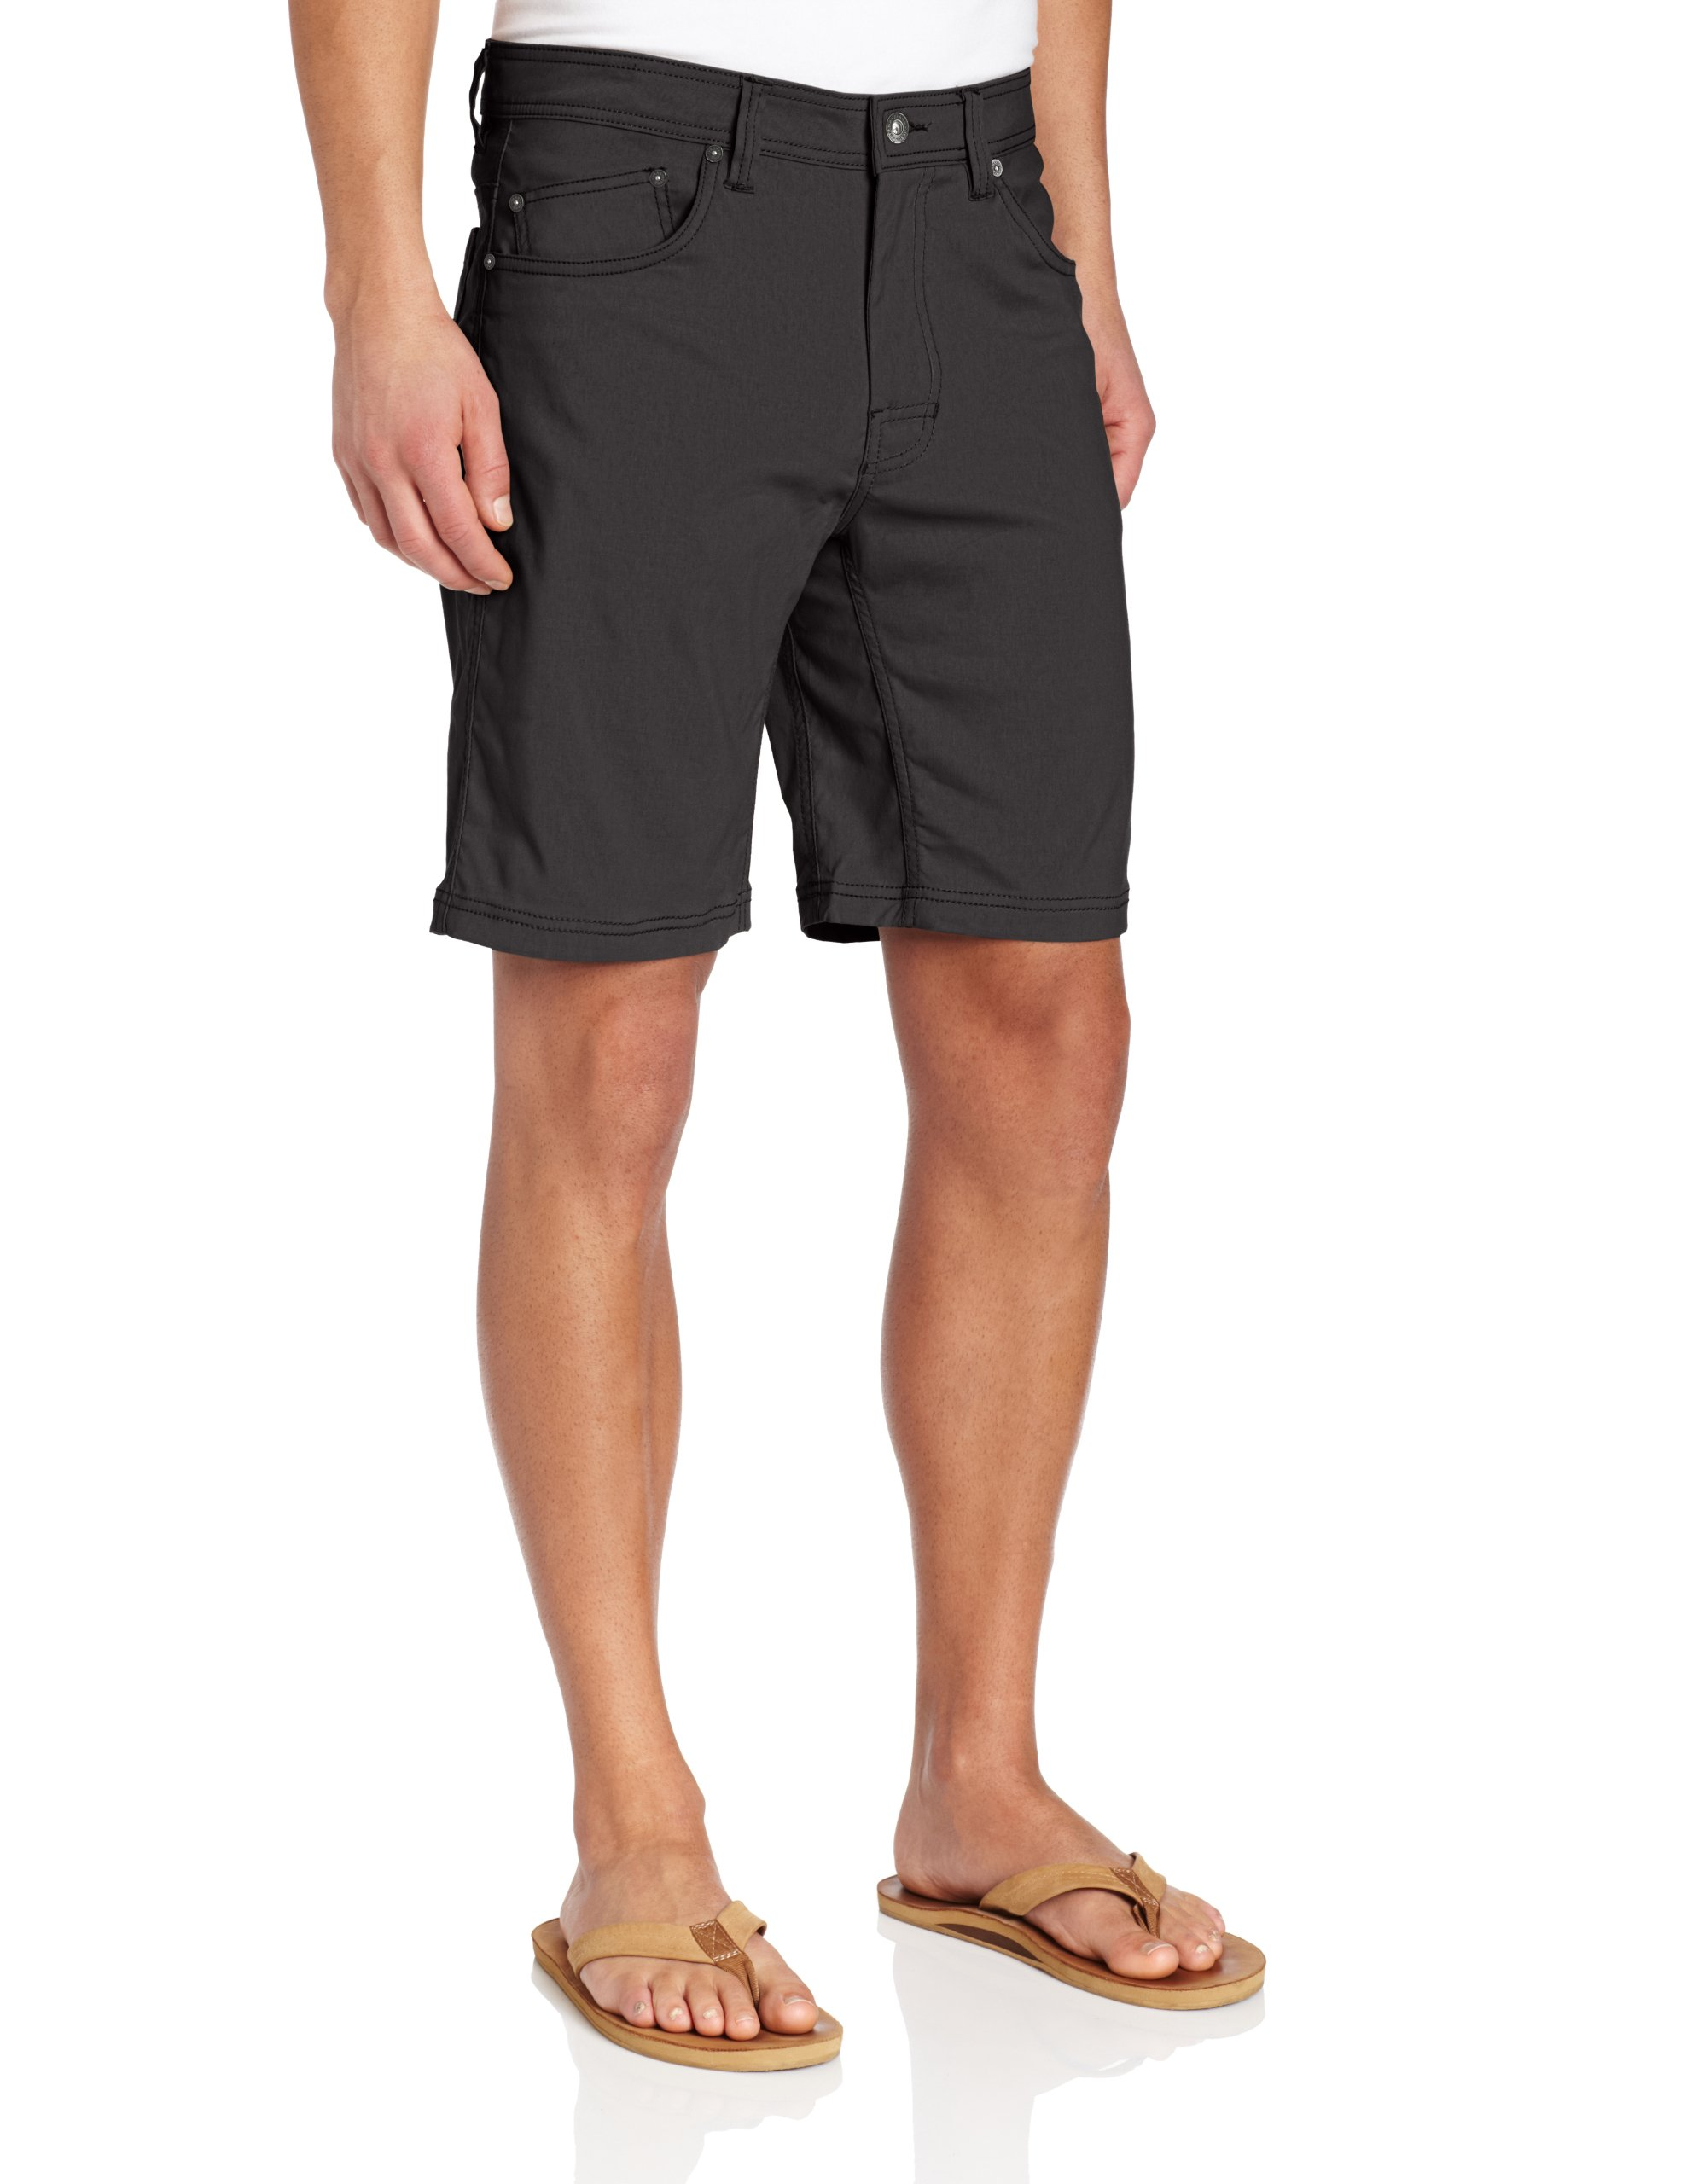 prAna Men's Brion Shorts, 36, Charcoal